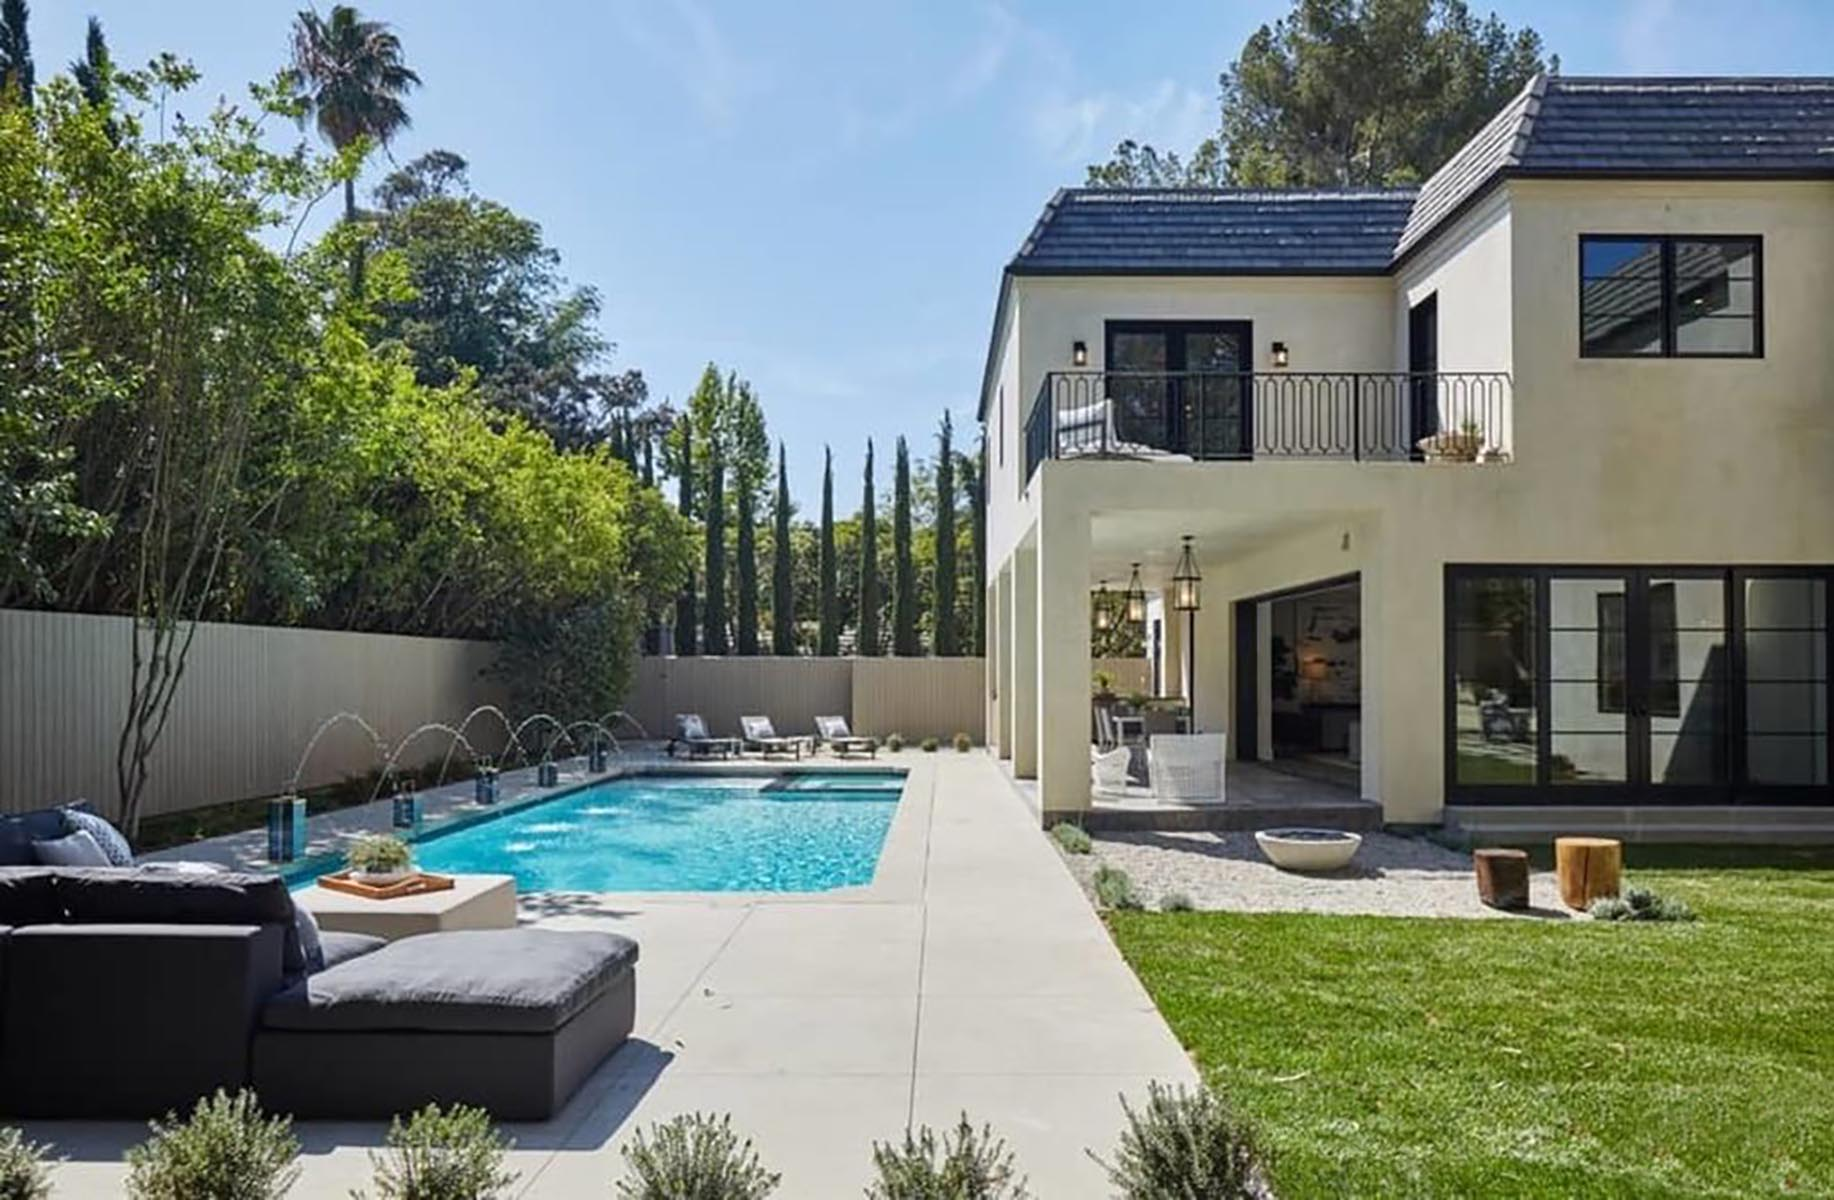 Architect home addition and remodel French contemporary style pool area